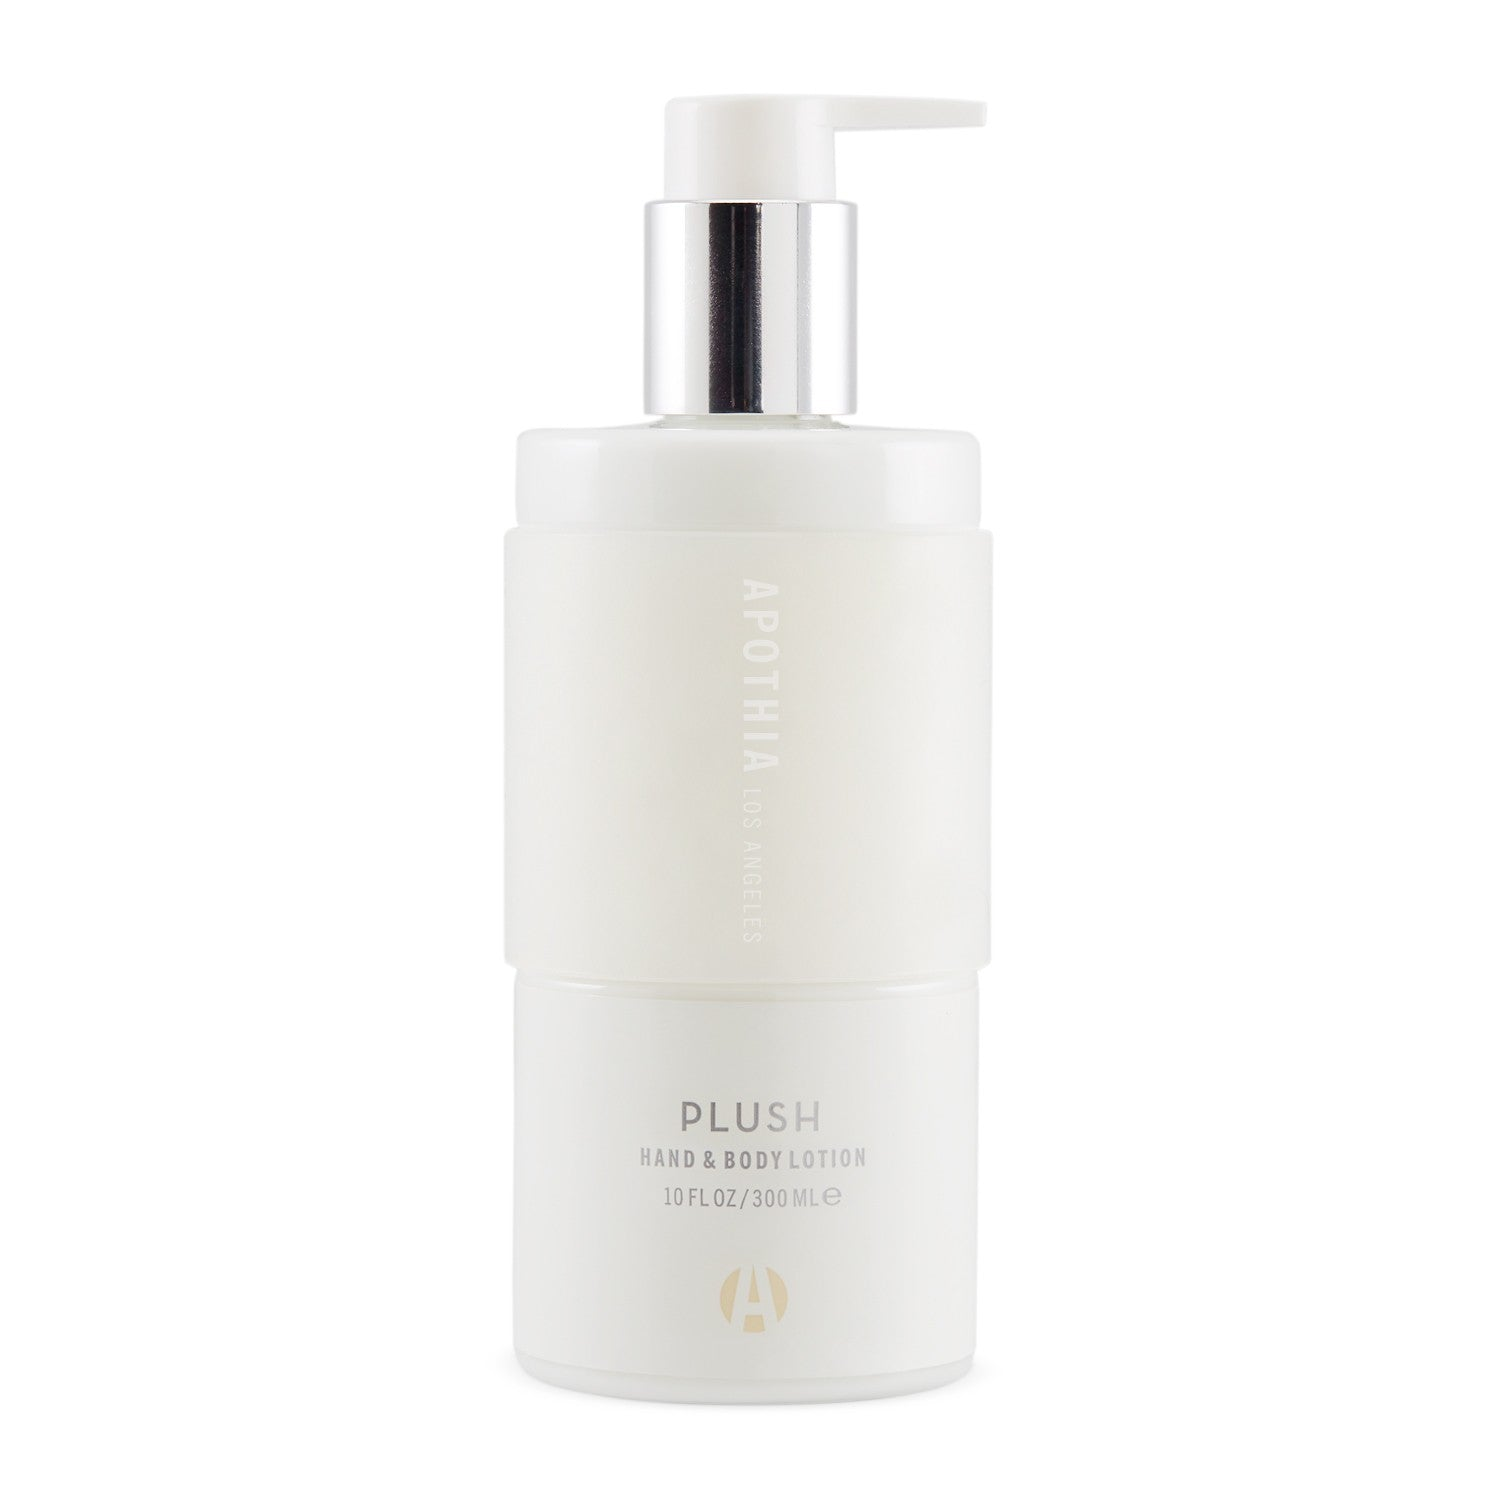 APOTHIA Hand & Body Lotion - Plush